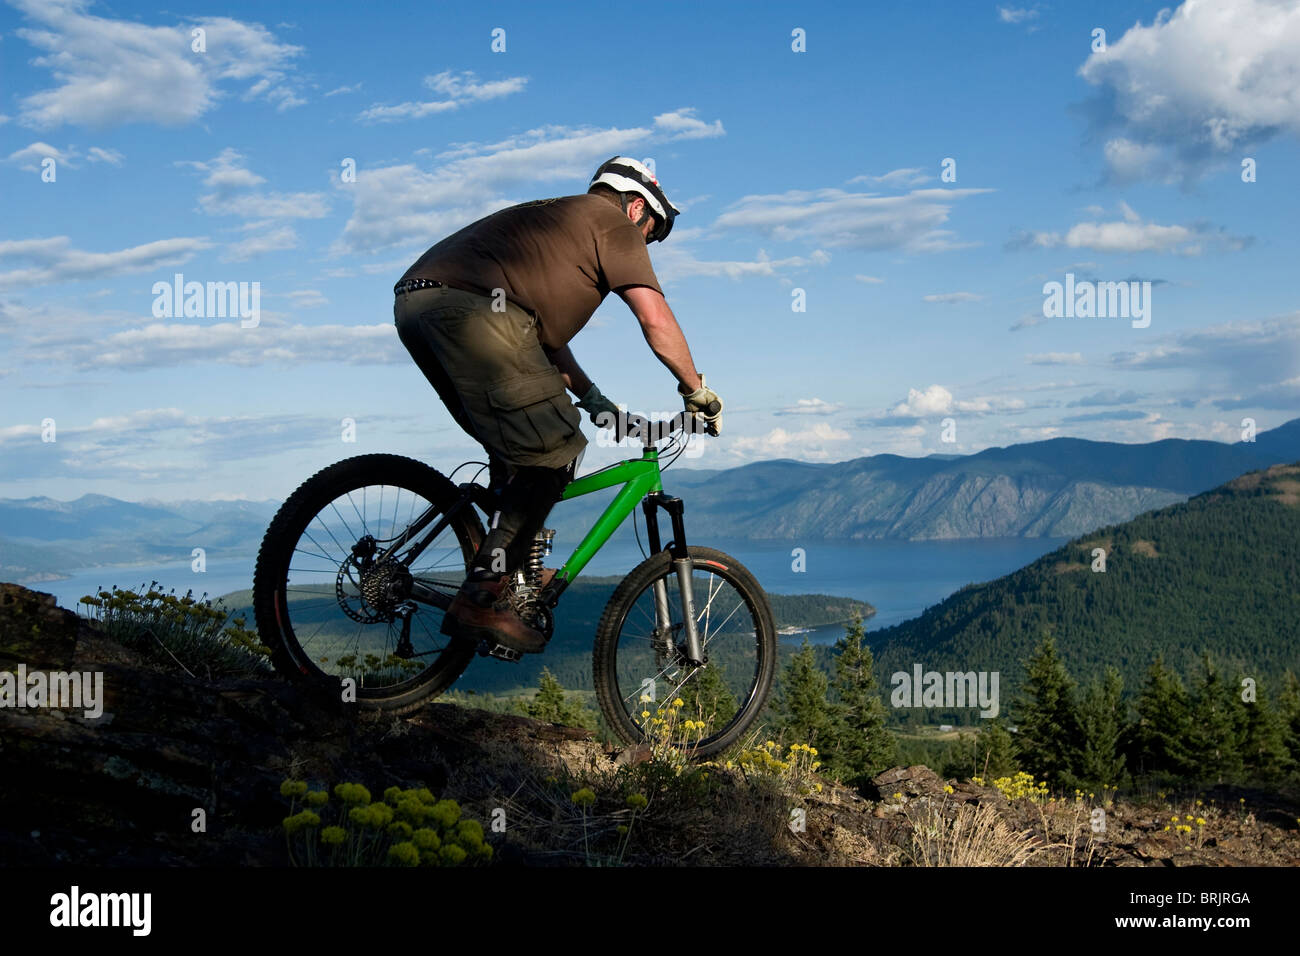 Young man mountain biking with lake in background. - Stock Image